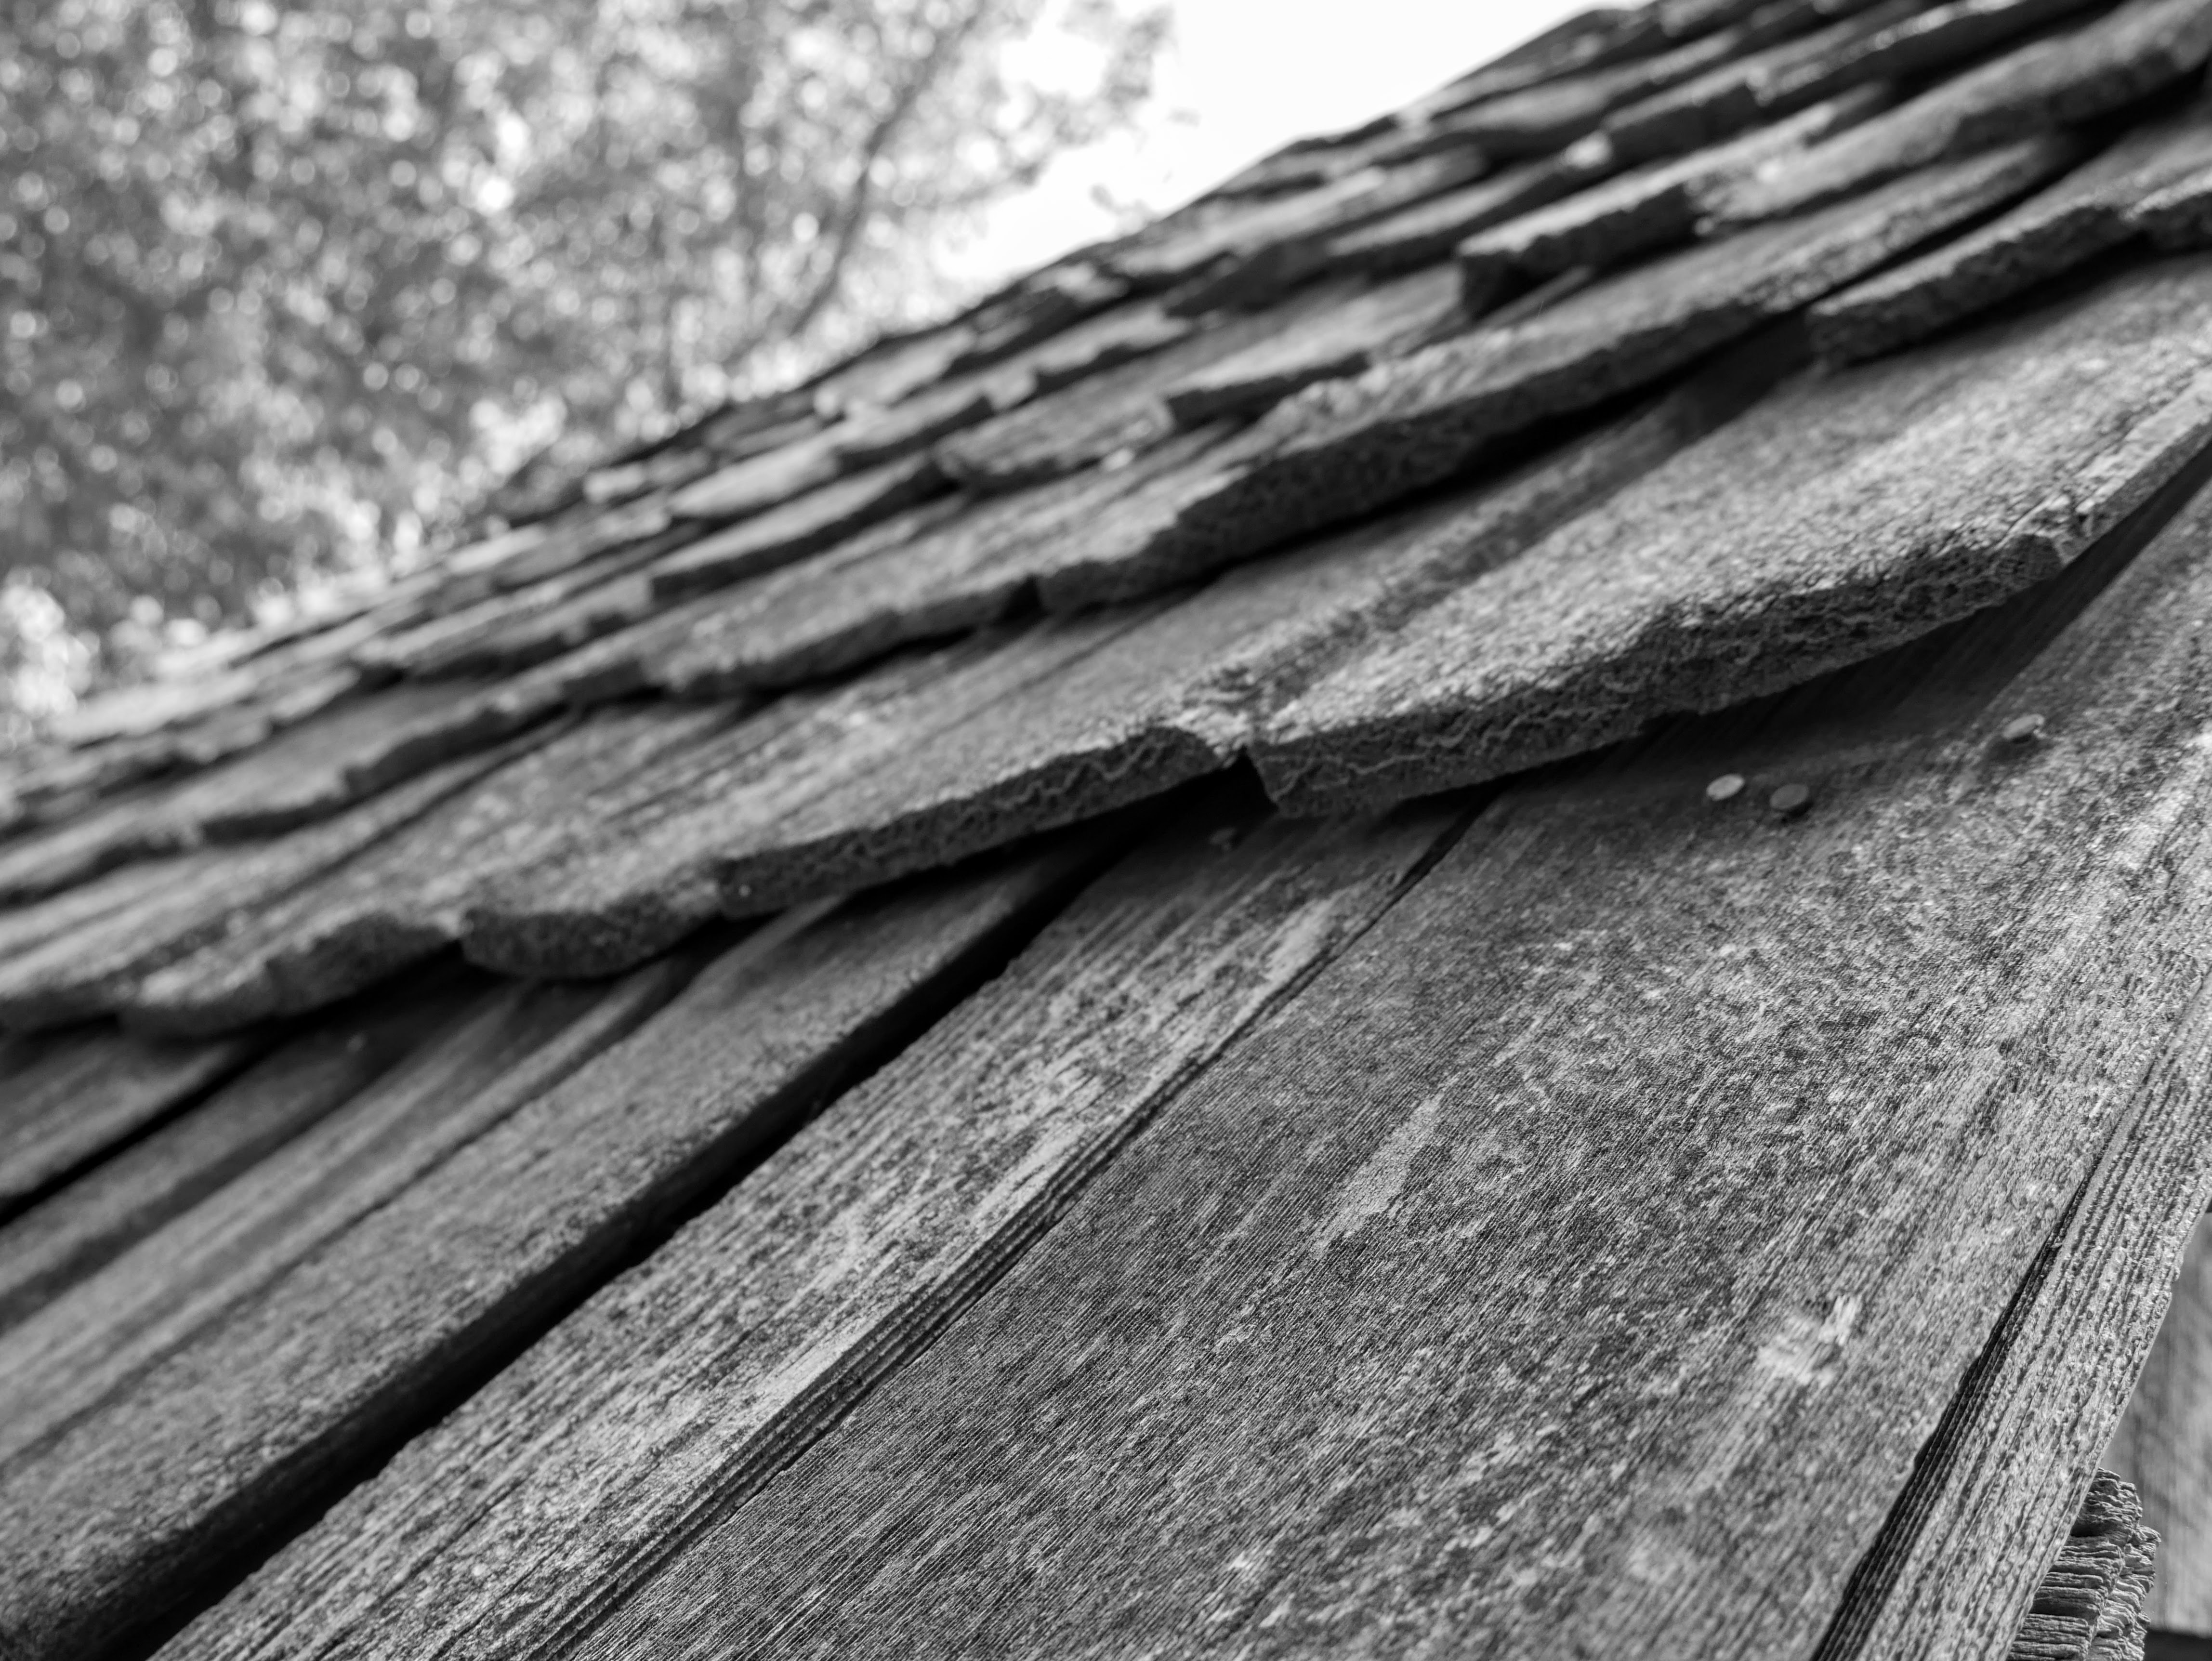 Close up view of irregularly sized, rectangular, wooden shingles in the foreground. A tree is out of focus in the background.